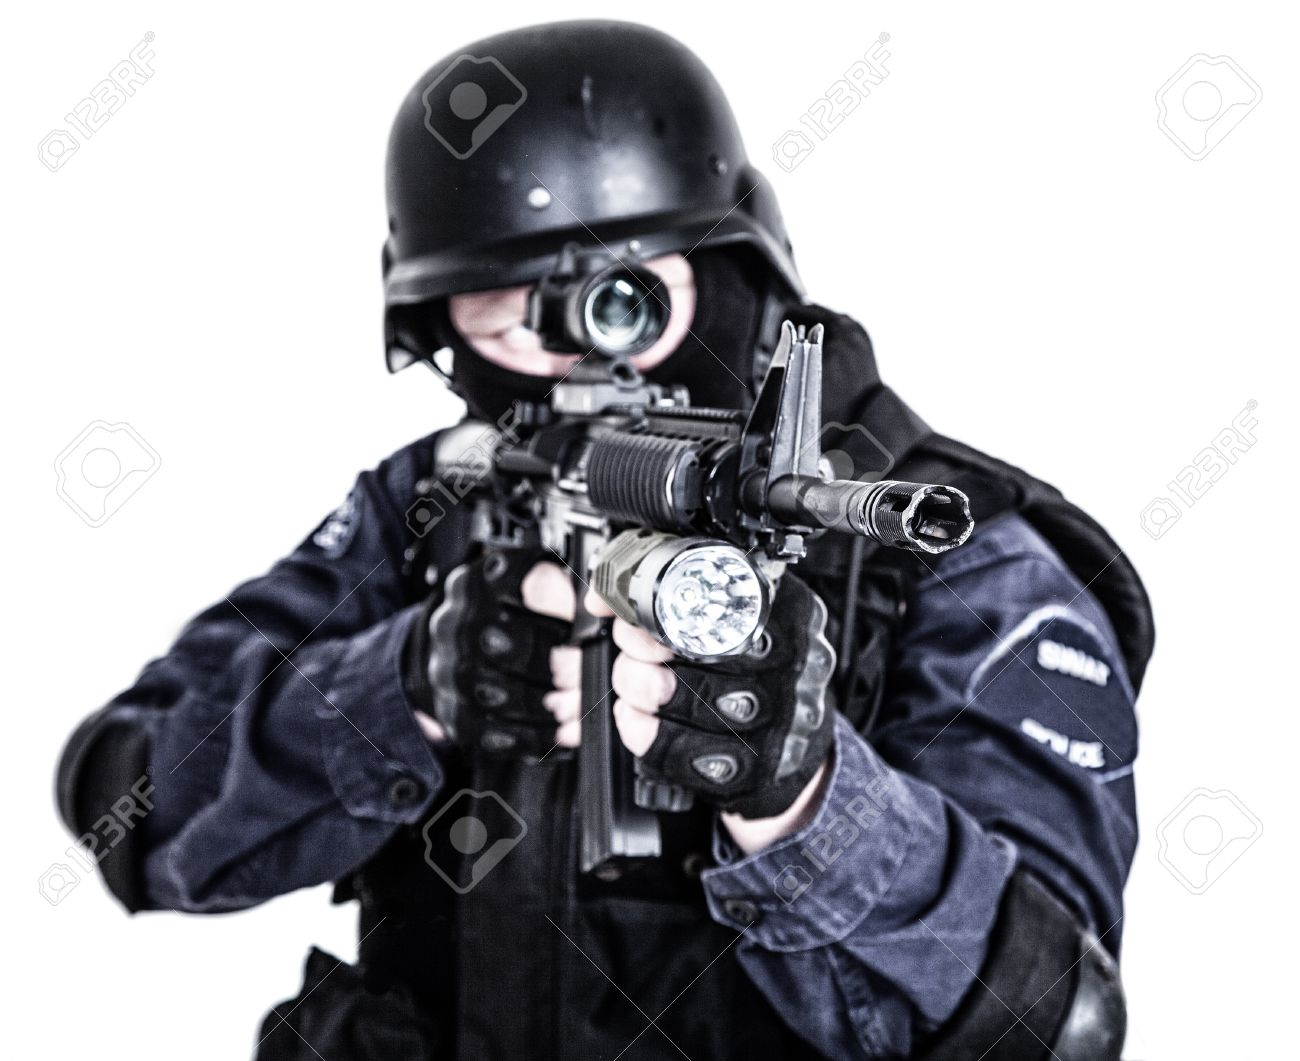 1300x1061 Swat Team Stock Photos. Royalty Free Business Images